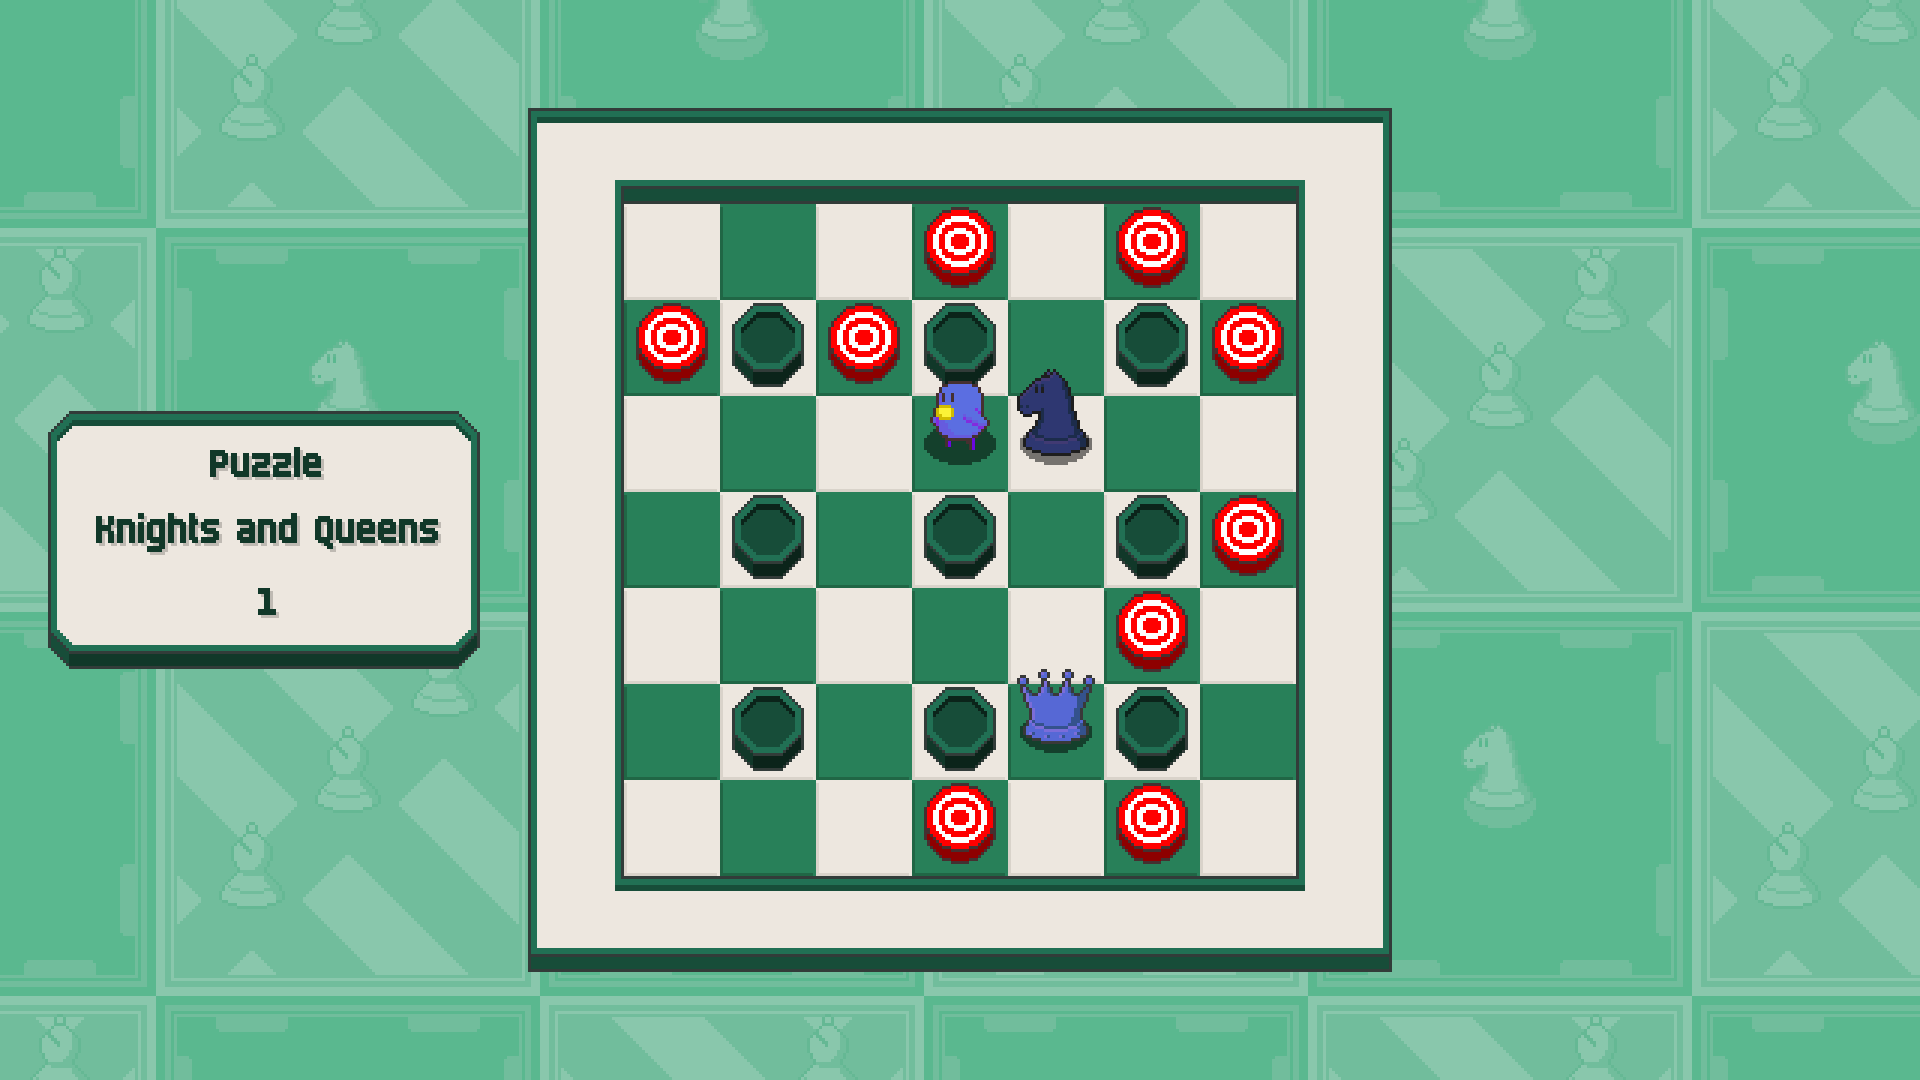 Chessplosion - Puzzle Solution Guide + Achievements Walkthrough - Grandblaster: Knights and Queens - 6FACD3F